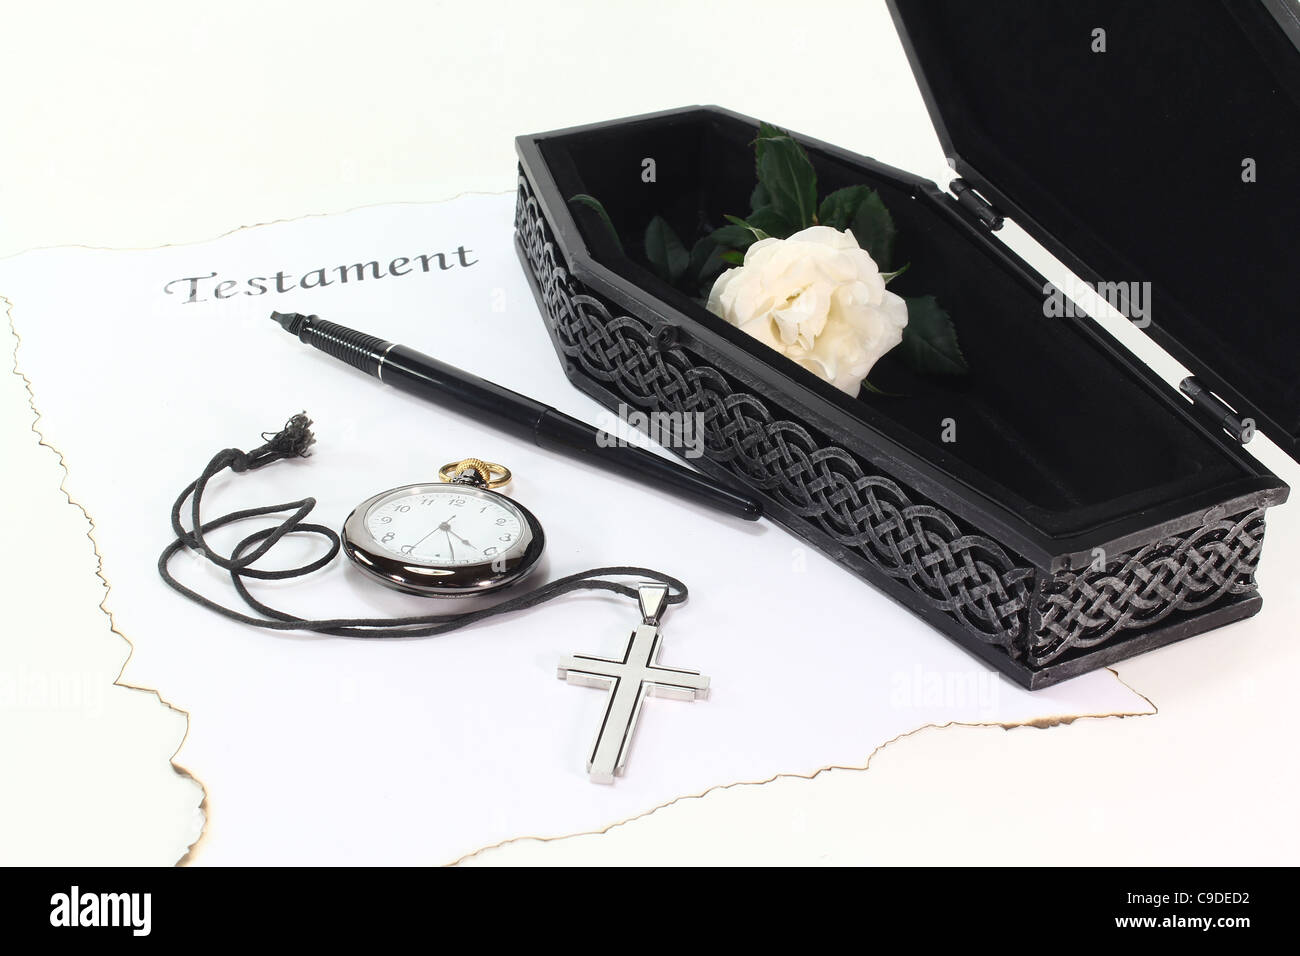 Testament with an open coffin, a white rose, clock, pen and cross - Stock Image